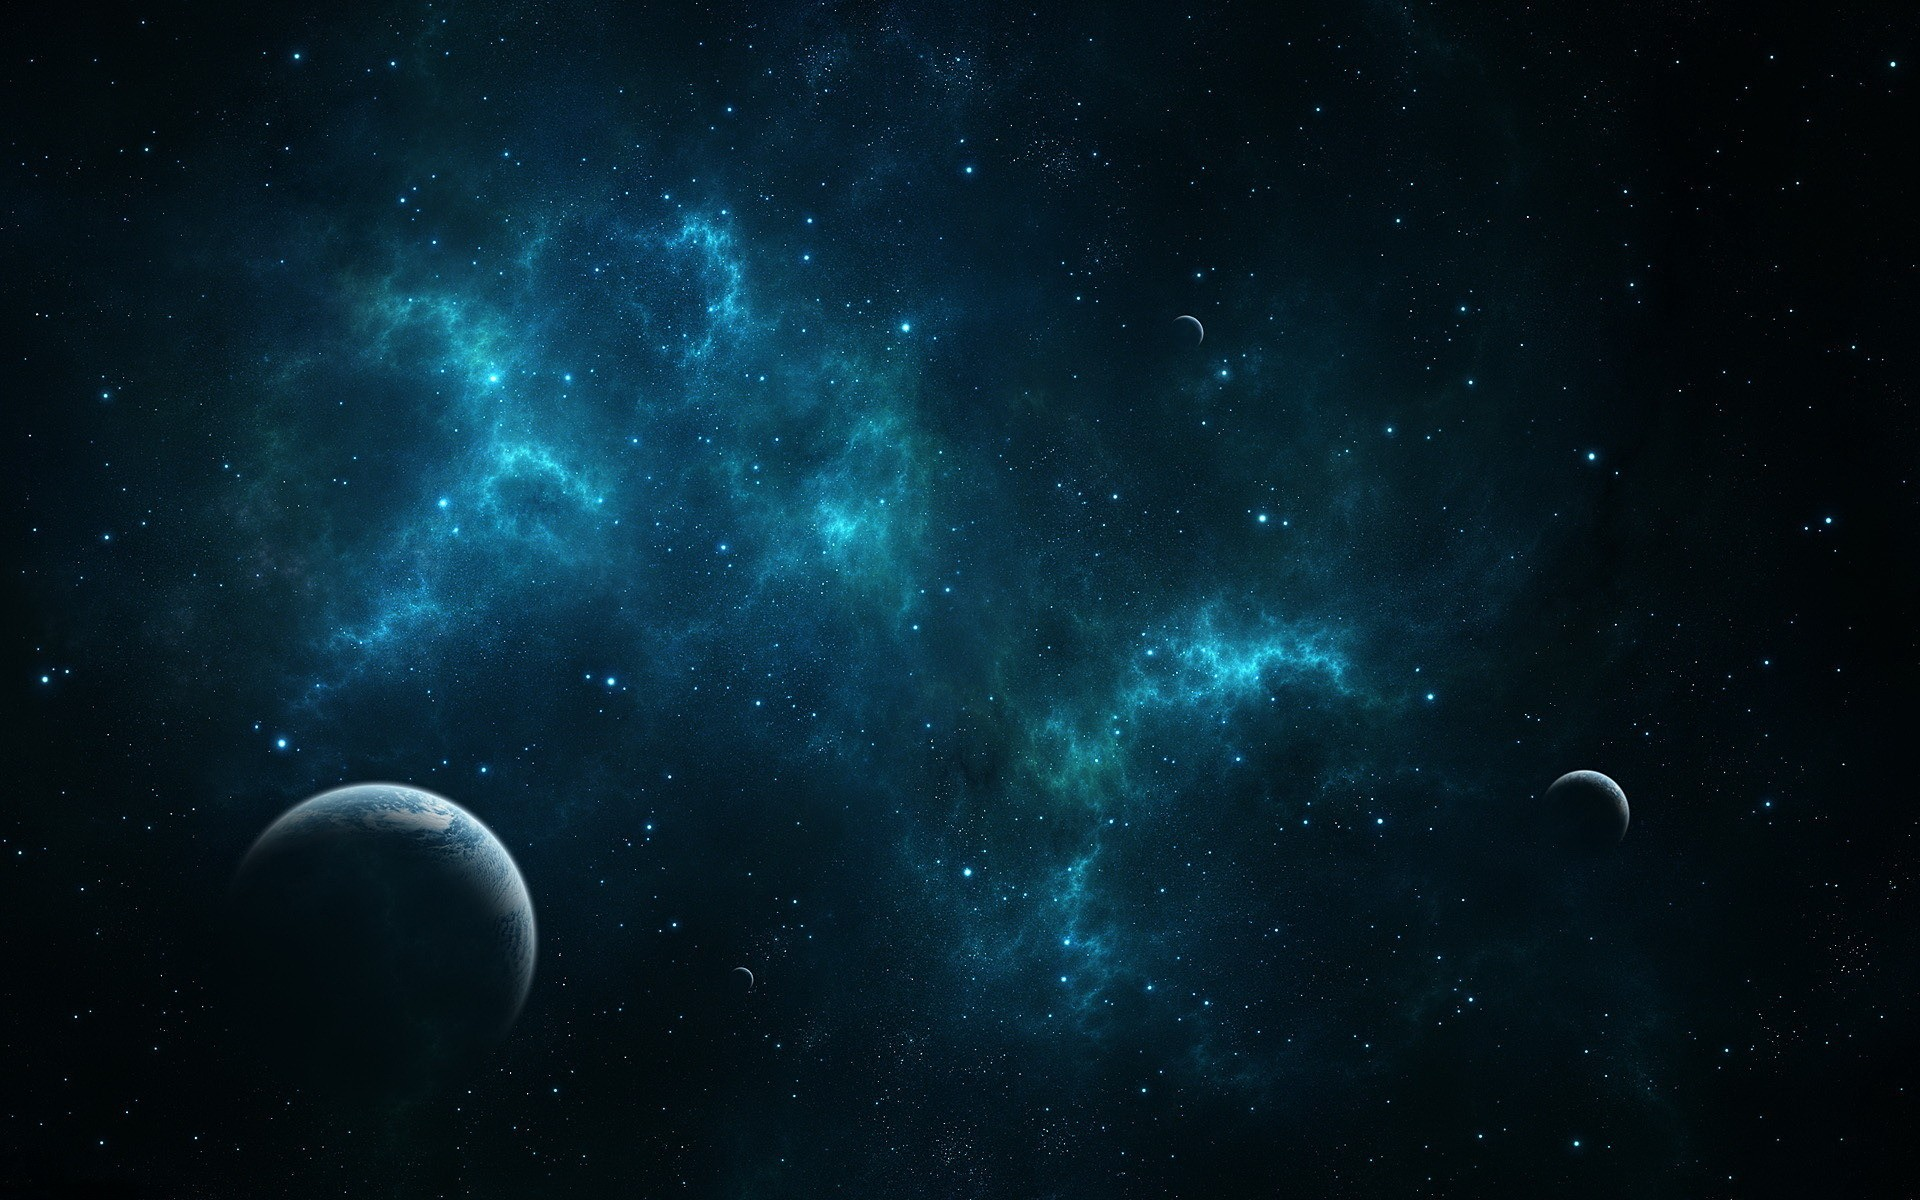 Cosmic Wallpaper · Cosmic Wallpaper ...